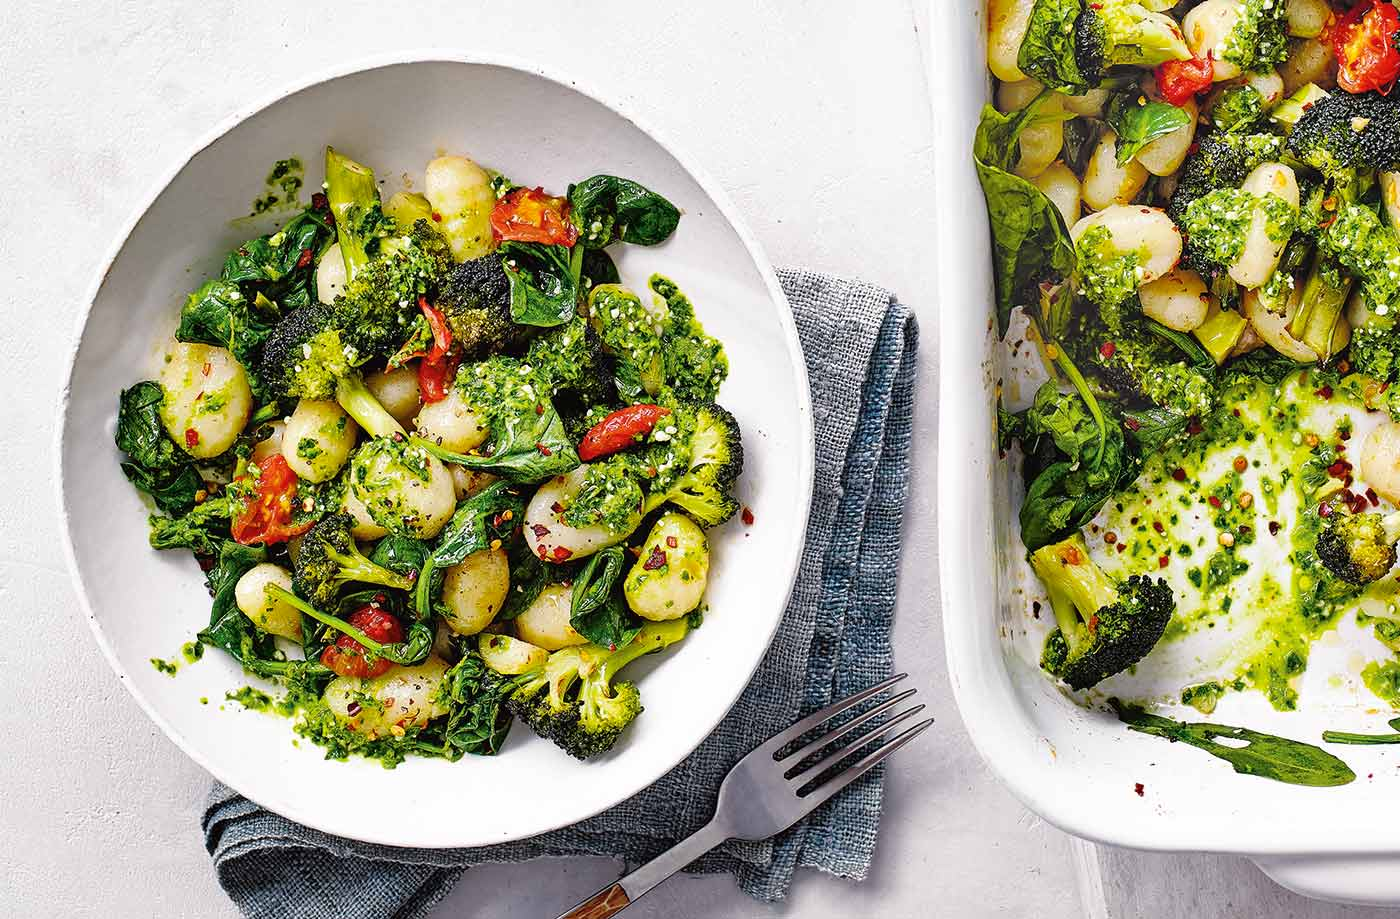 Roast gnocchi with veg and spinach pesto recipe